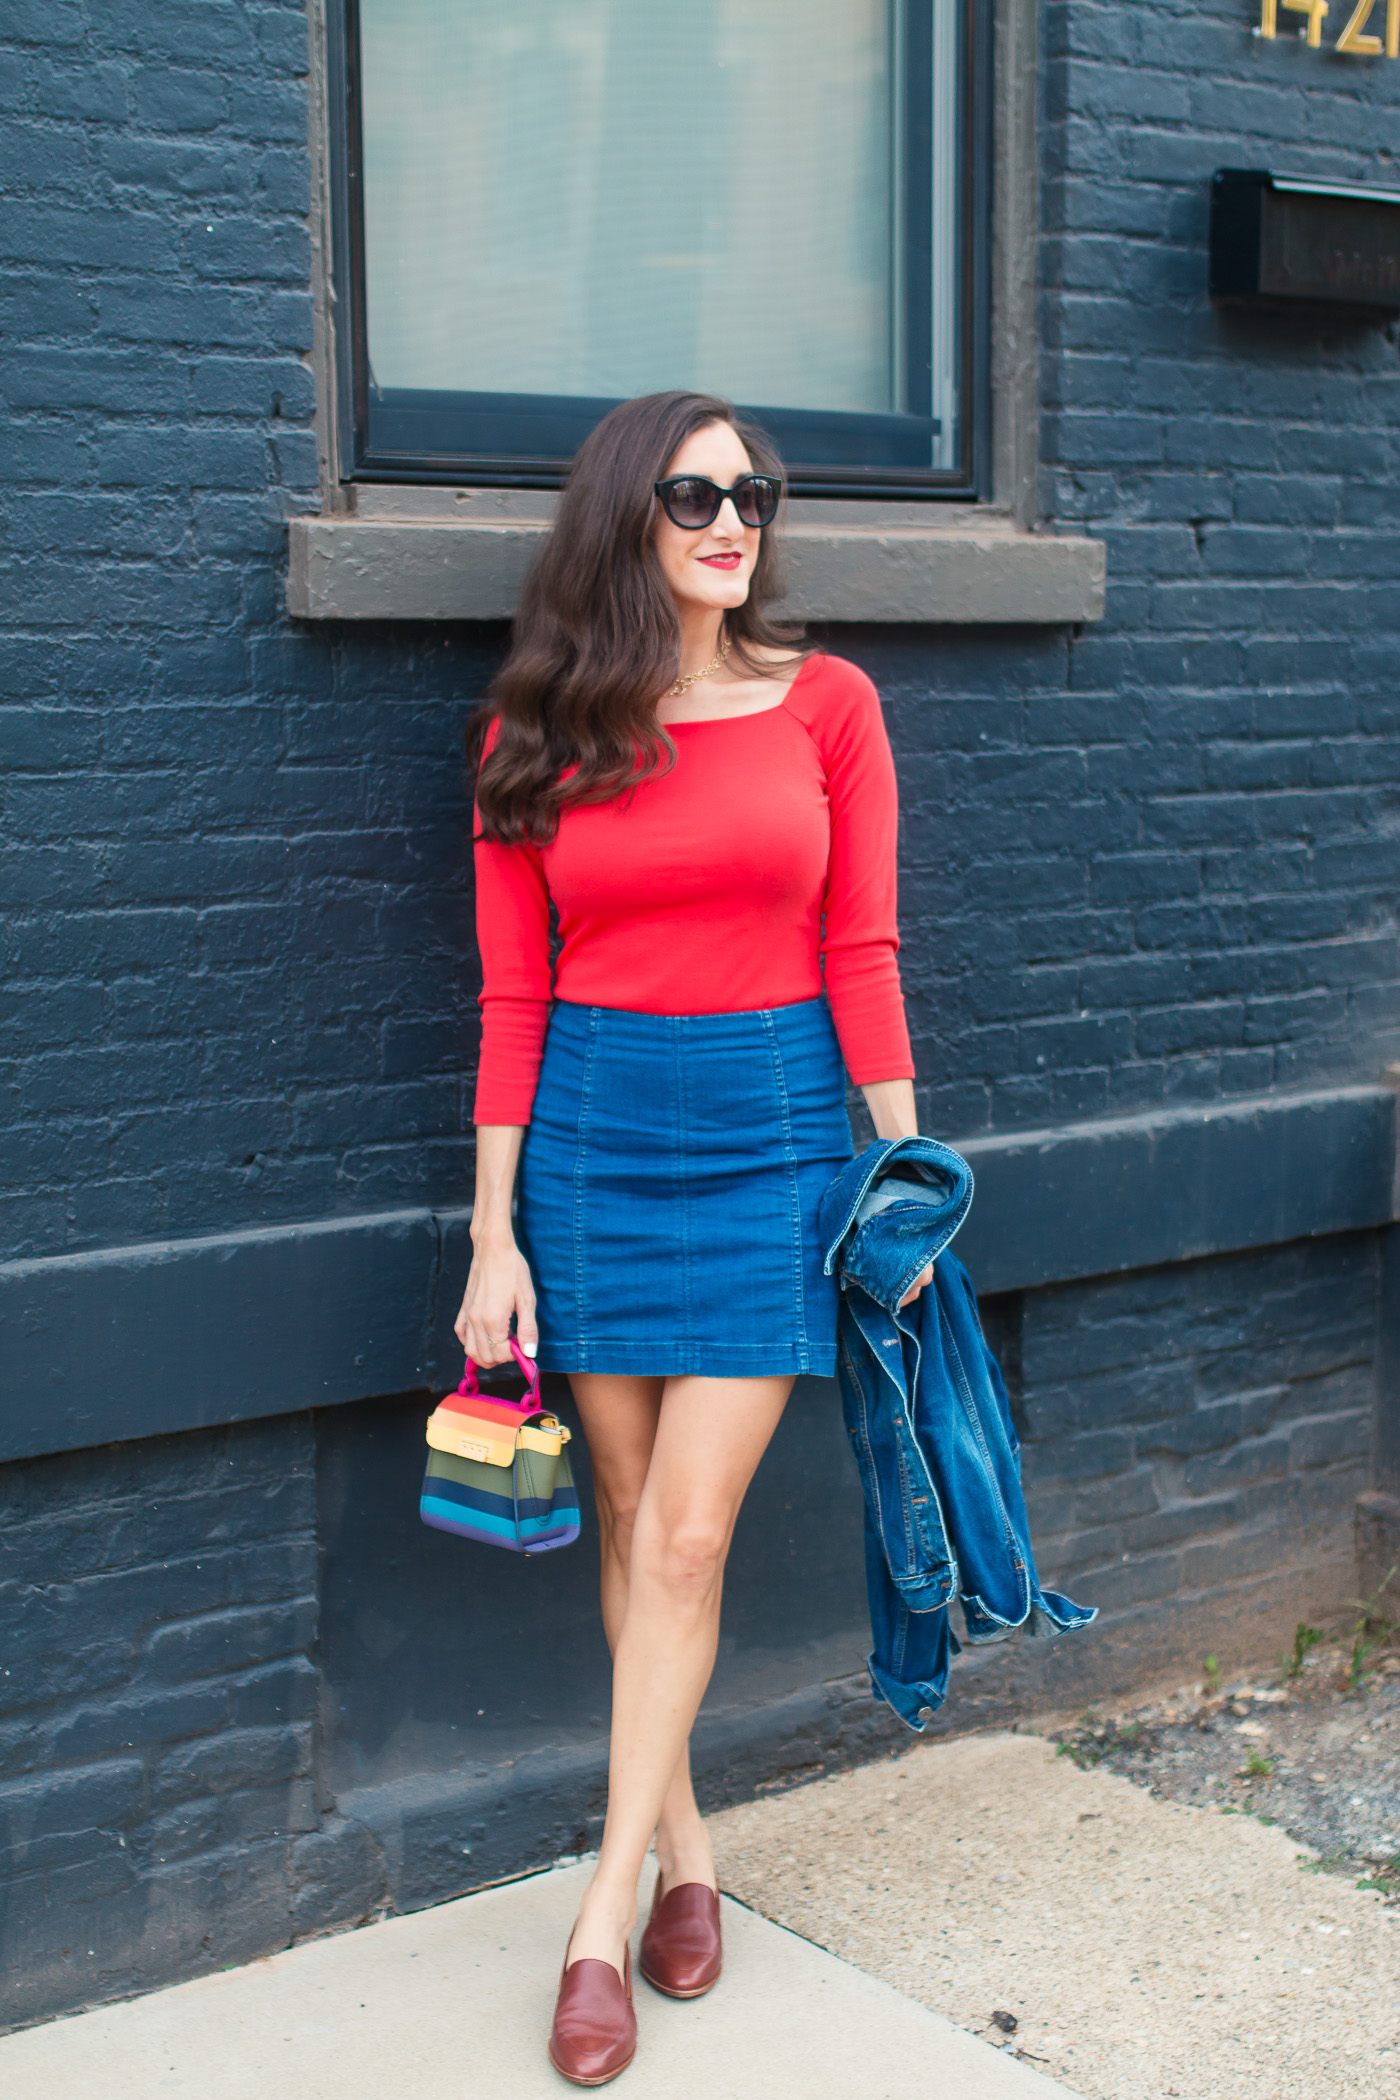 Fashion Blogger Baubles to Bubbles wearing Denim Skirt